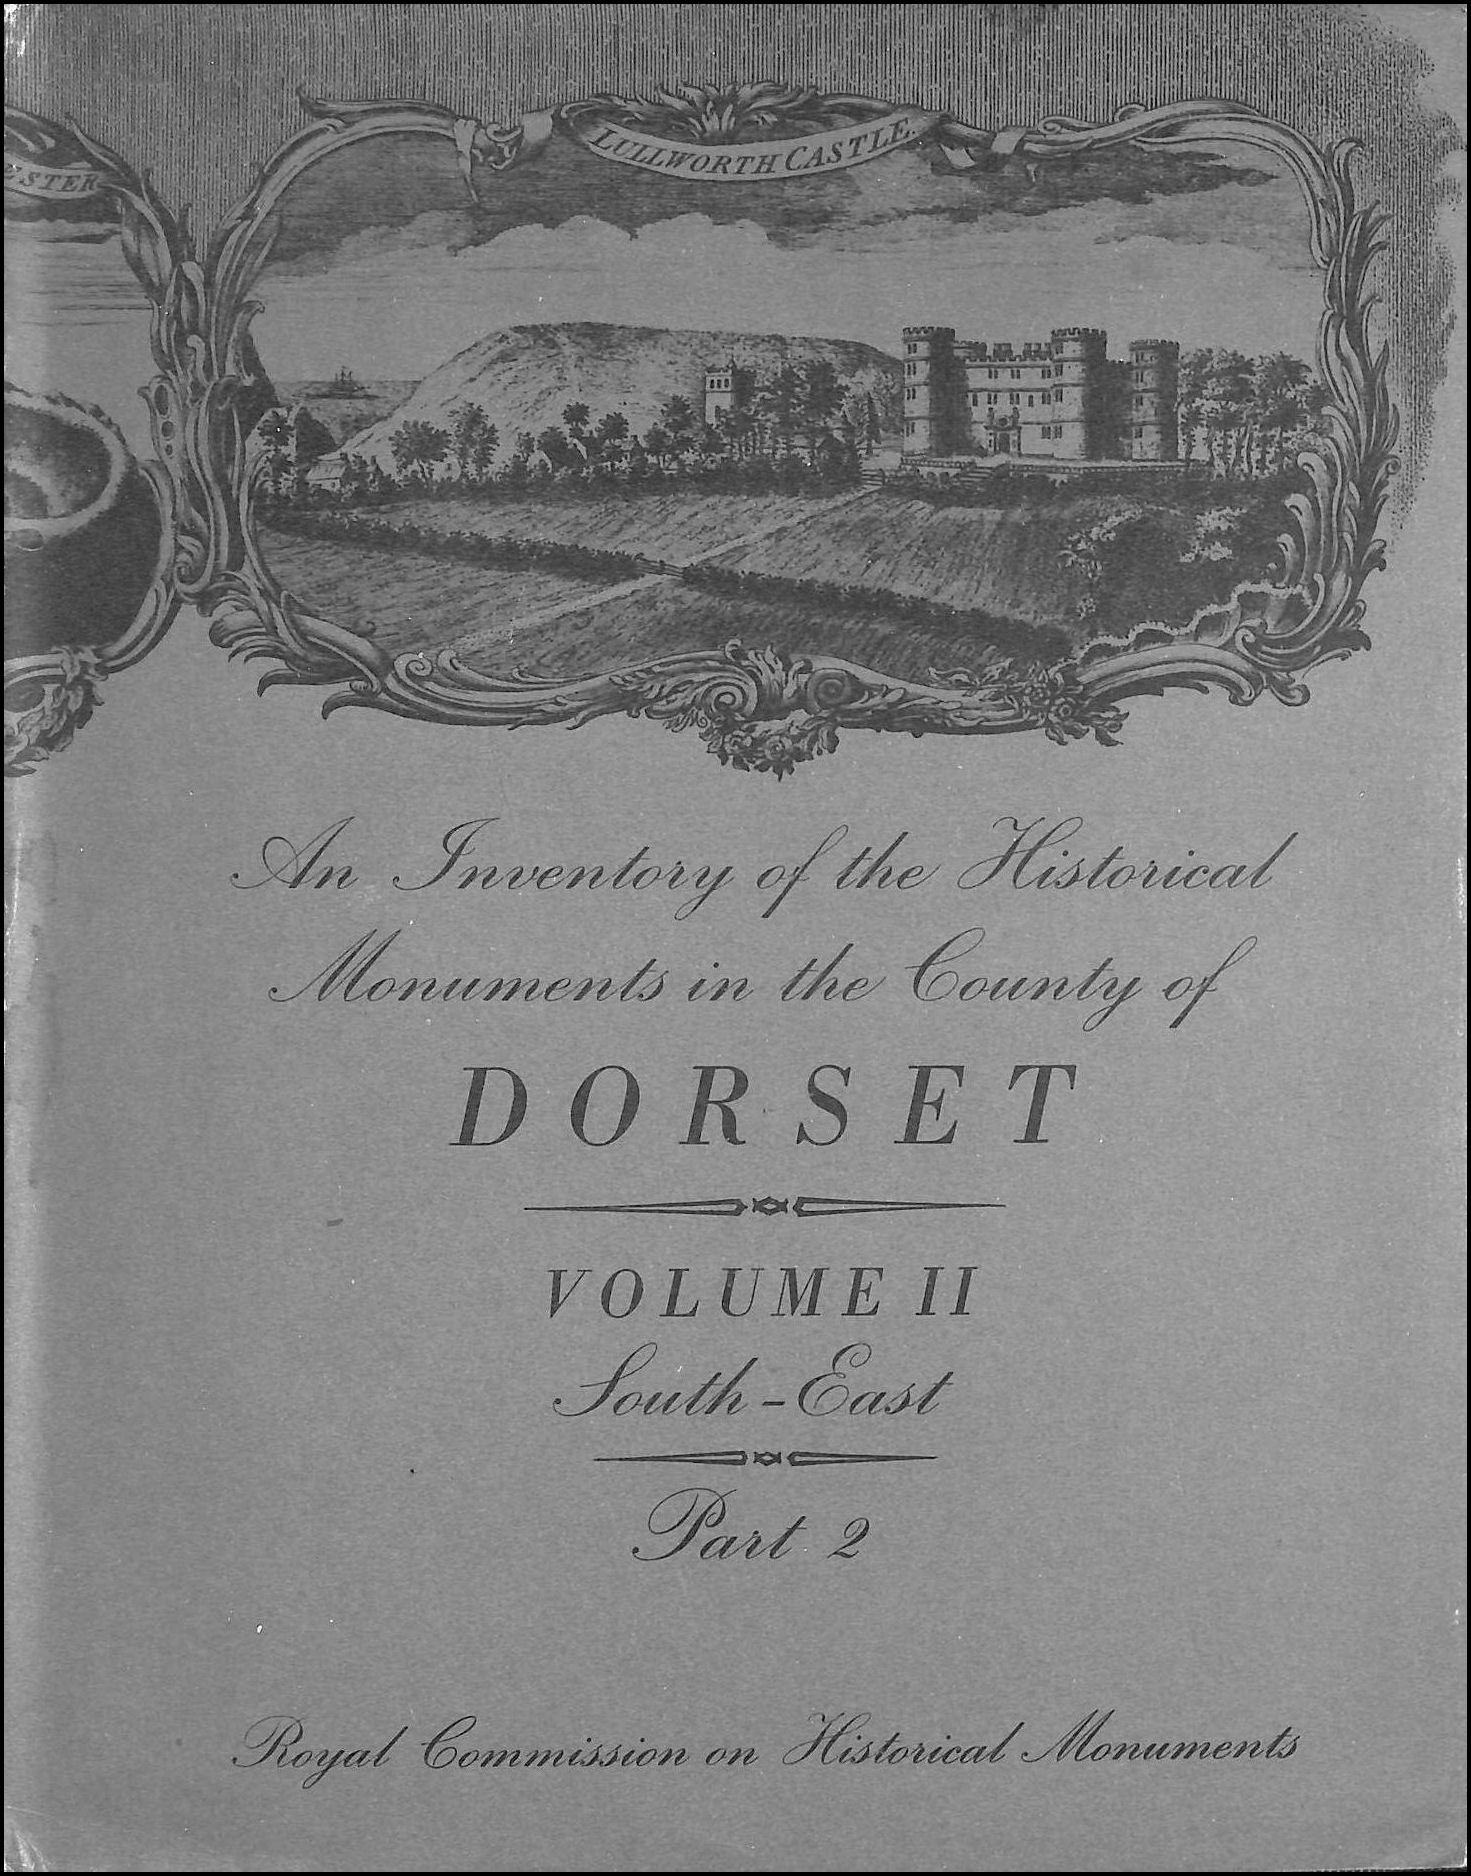 An Inventory of the Histprical Monuments in the County of Dorset; Volume II, South-East, Part 2, Royal Commission on Historical Monuments